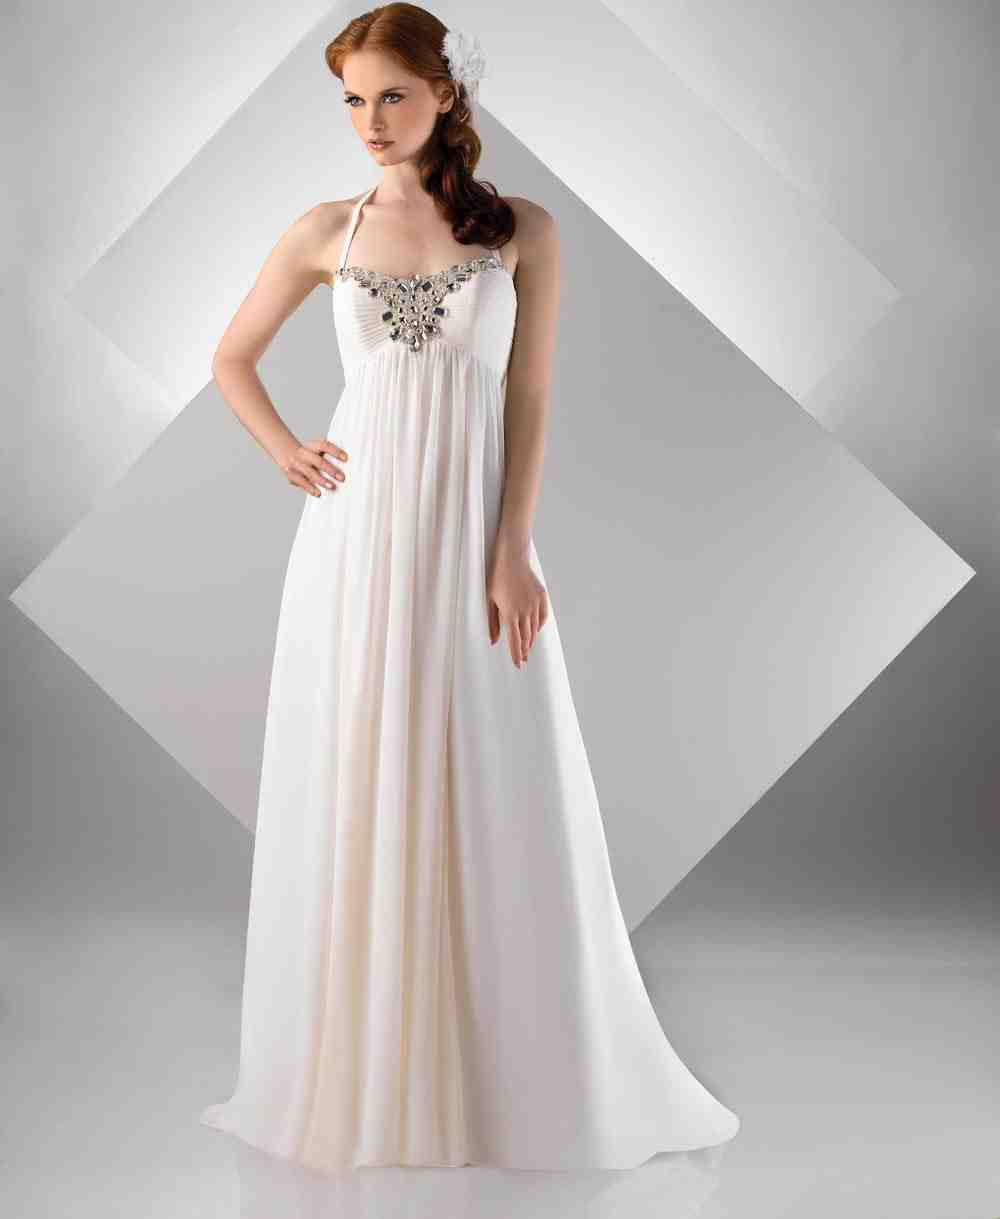 simple maternity wedding dresses wedding and bridal With simple maternity wedding dresses